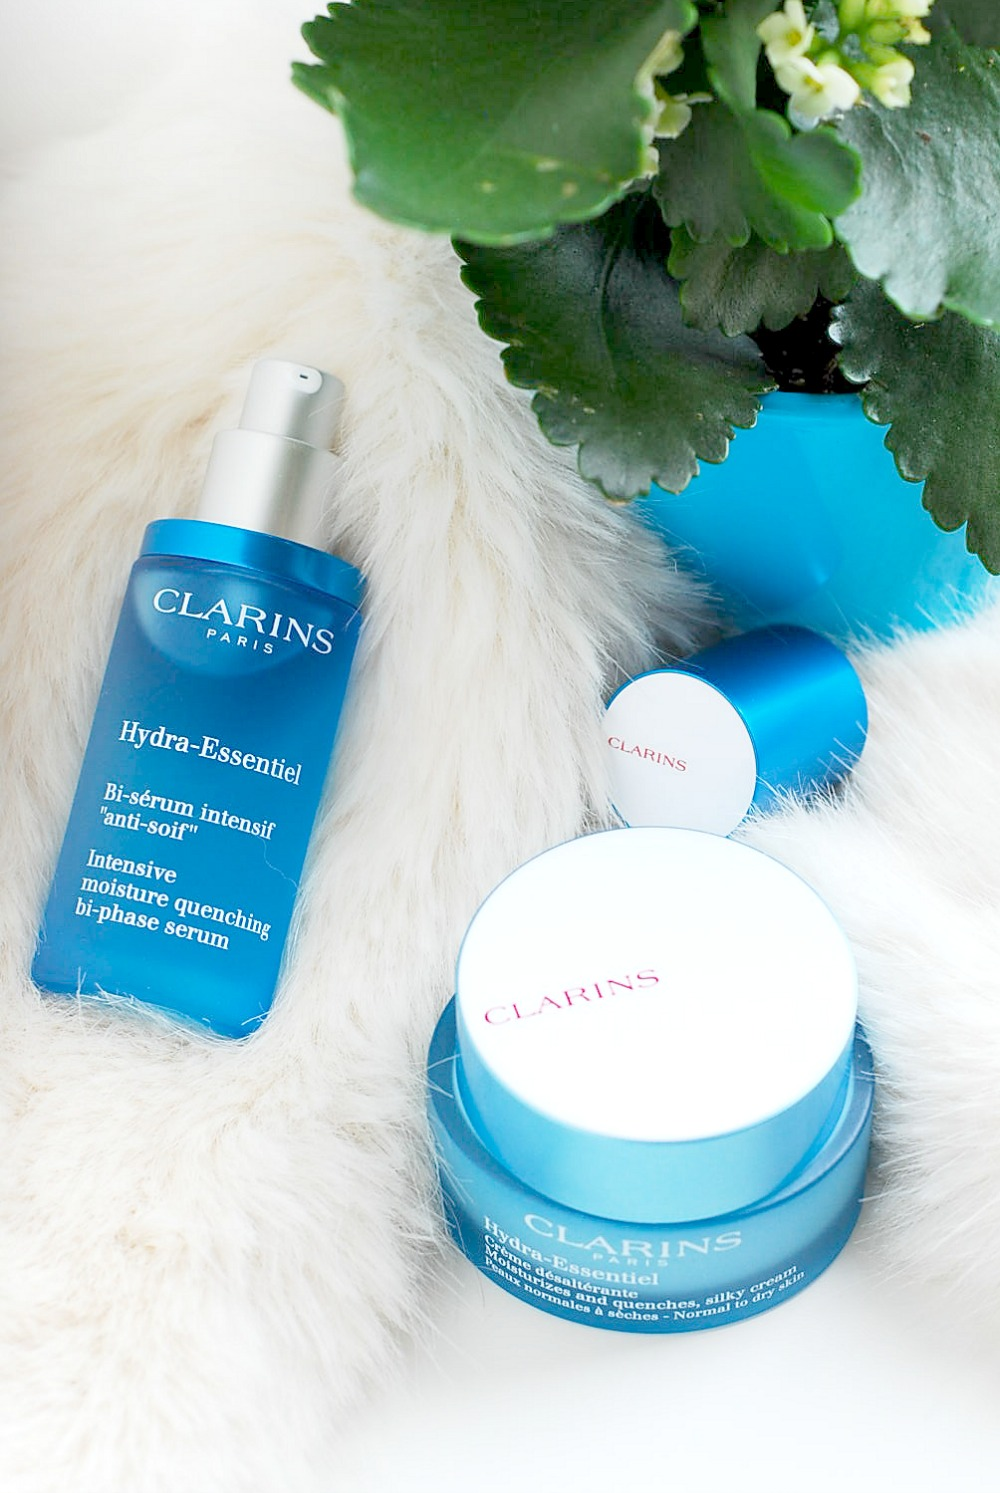 Clarins Hydra-Essentiel replaces HydraQuench